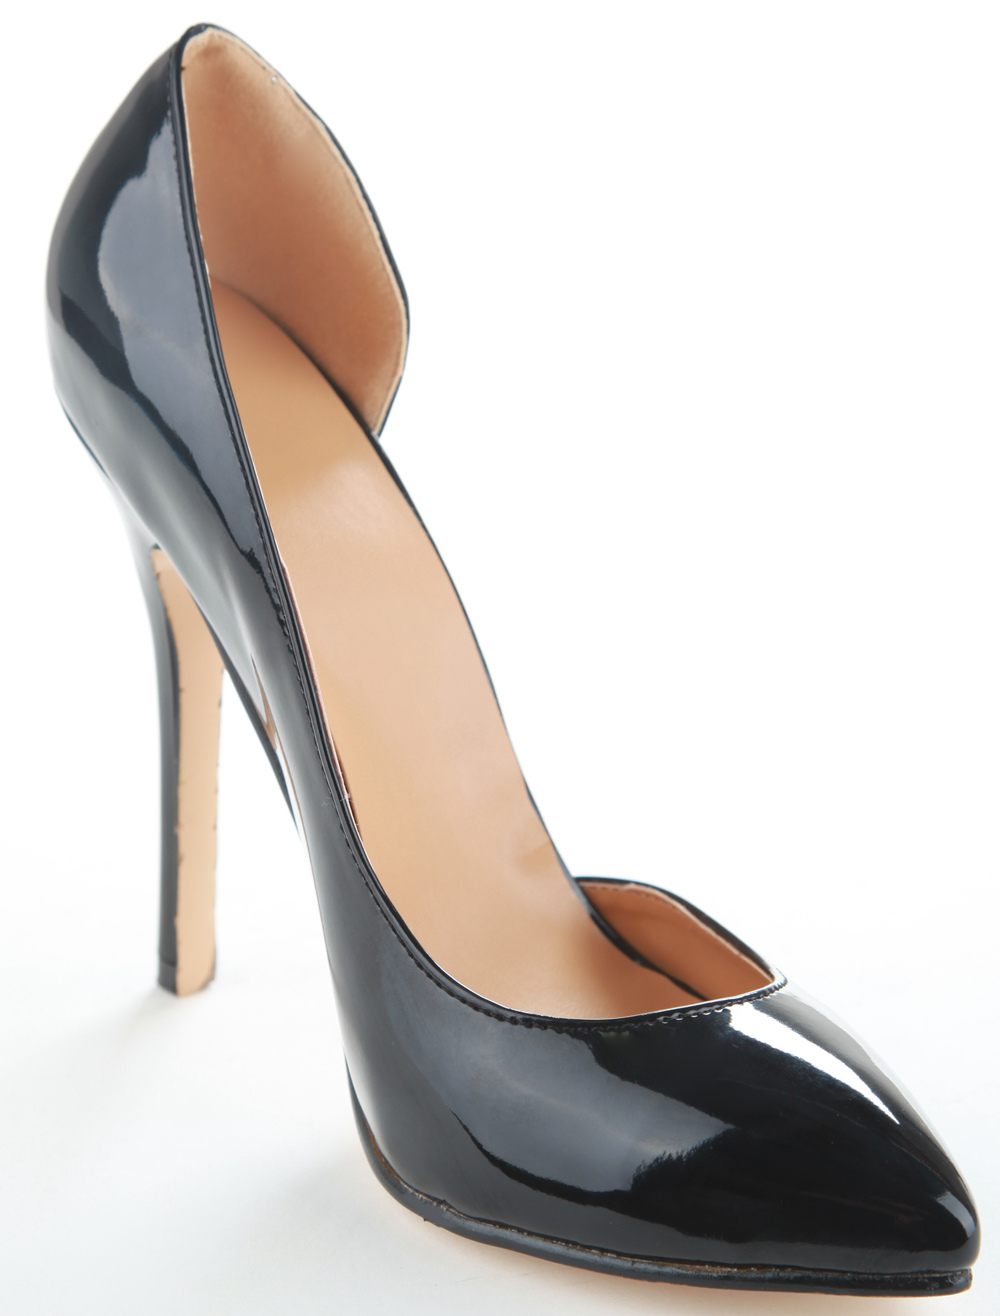 swingerclub nossen unterschied high heels pumps